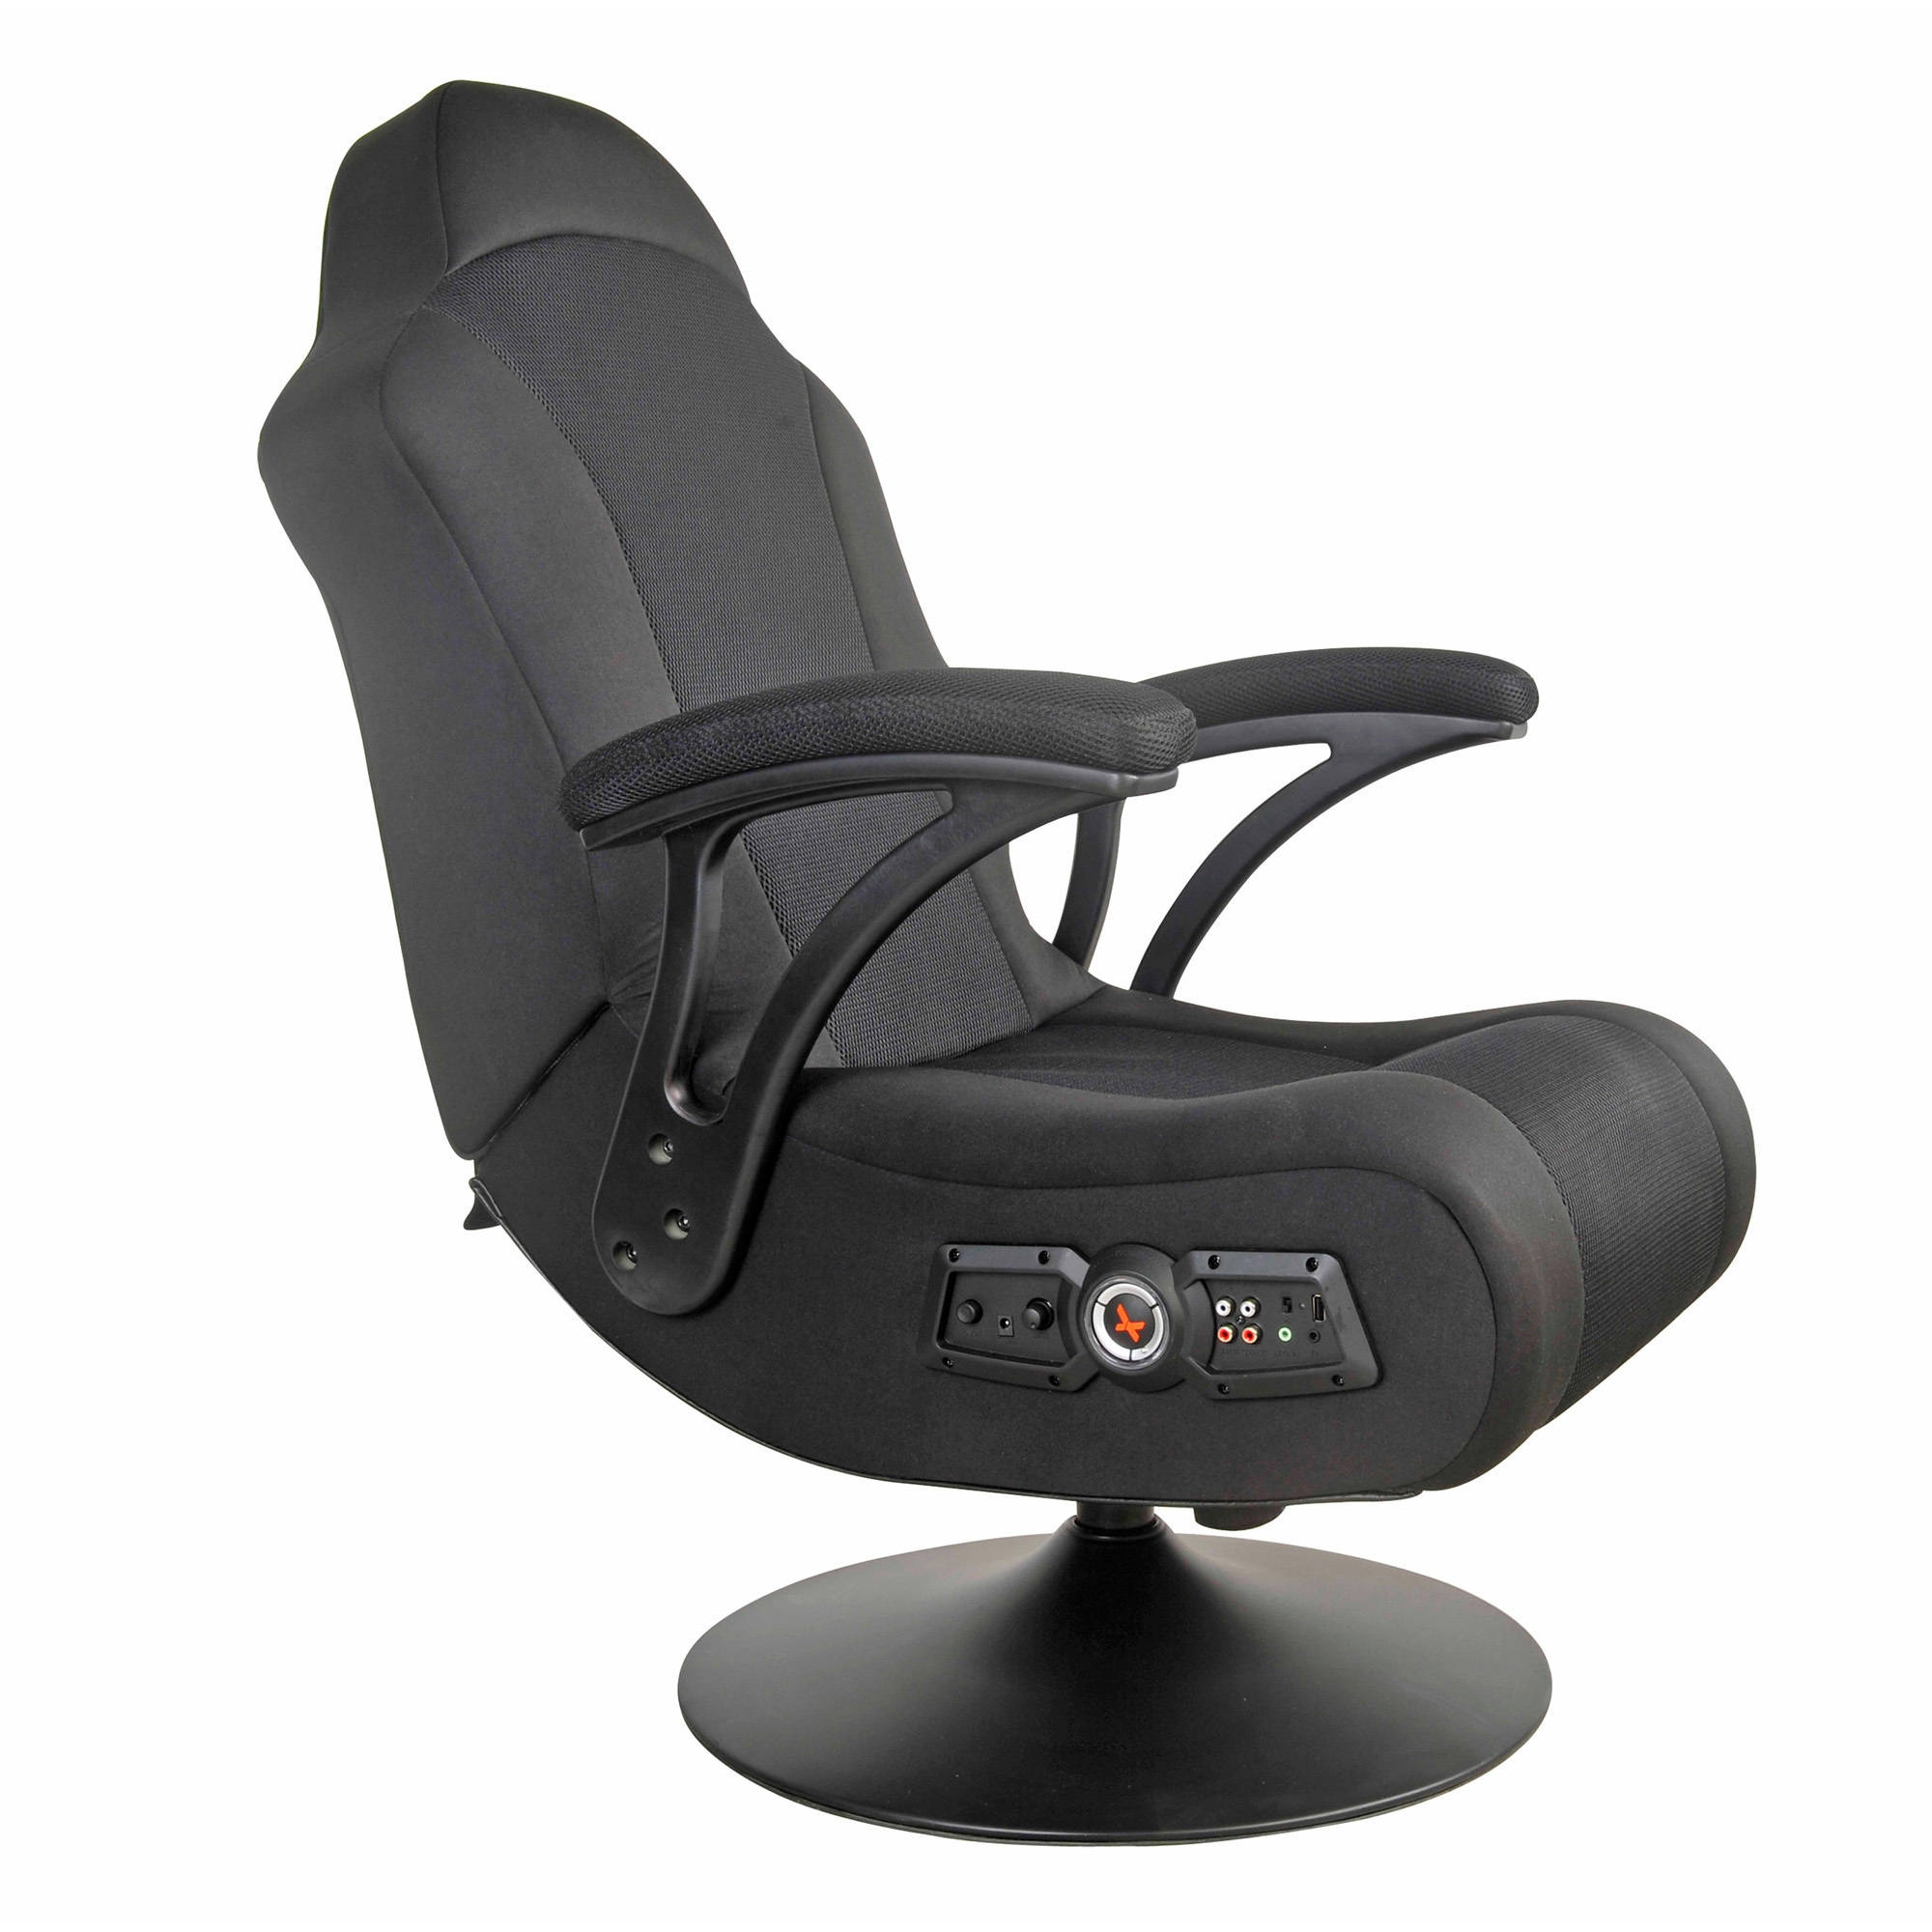 Furniture Enchanting Walmart Gaming Chair For Your Lovely Chairs With Regard To Gaming Sofa Chairs (Image 6 of 15)